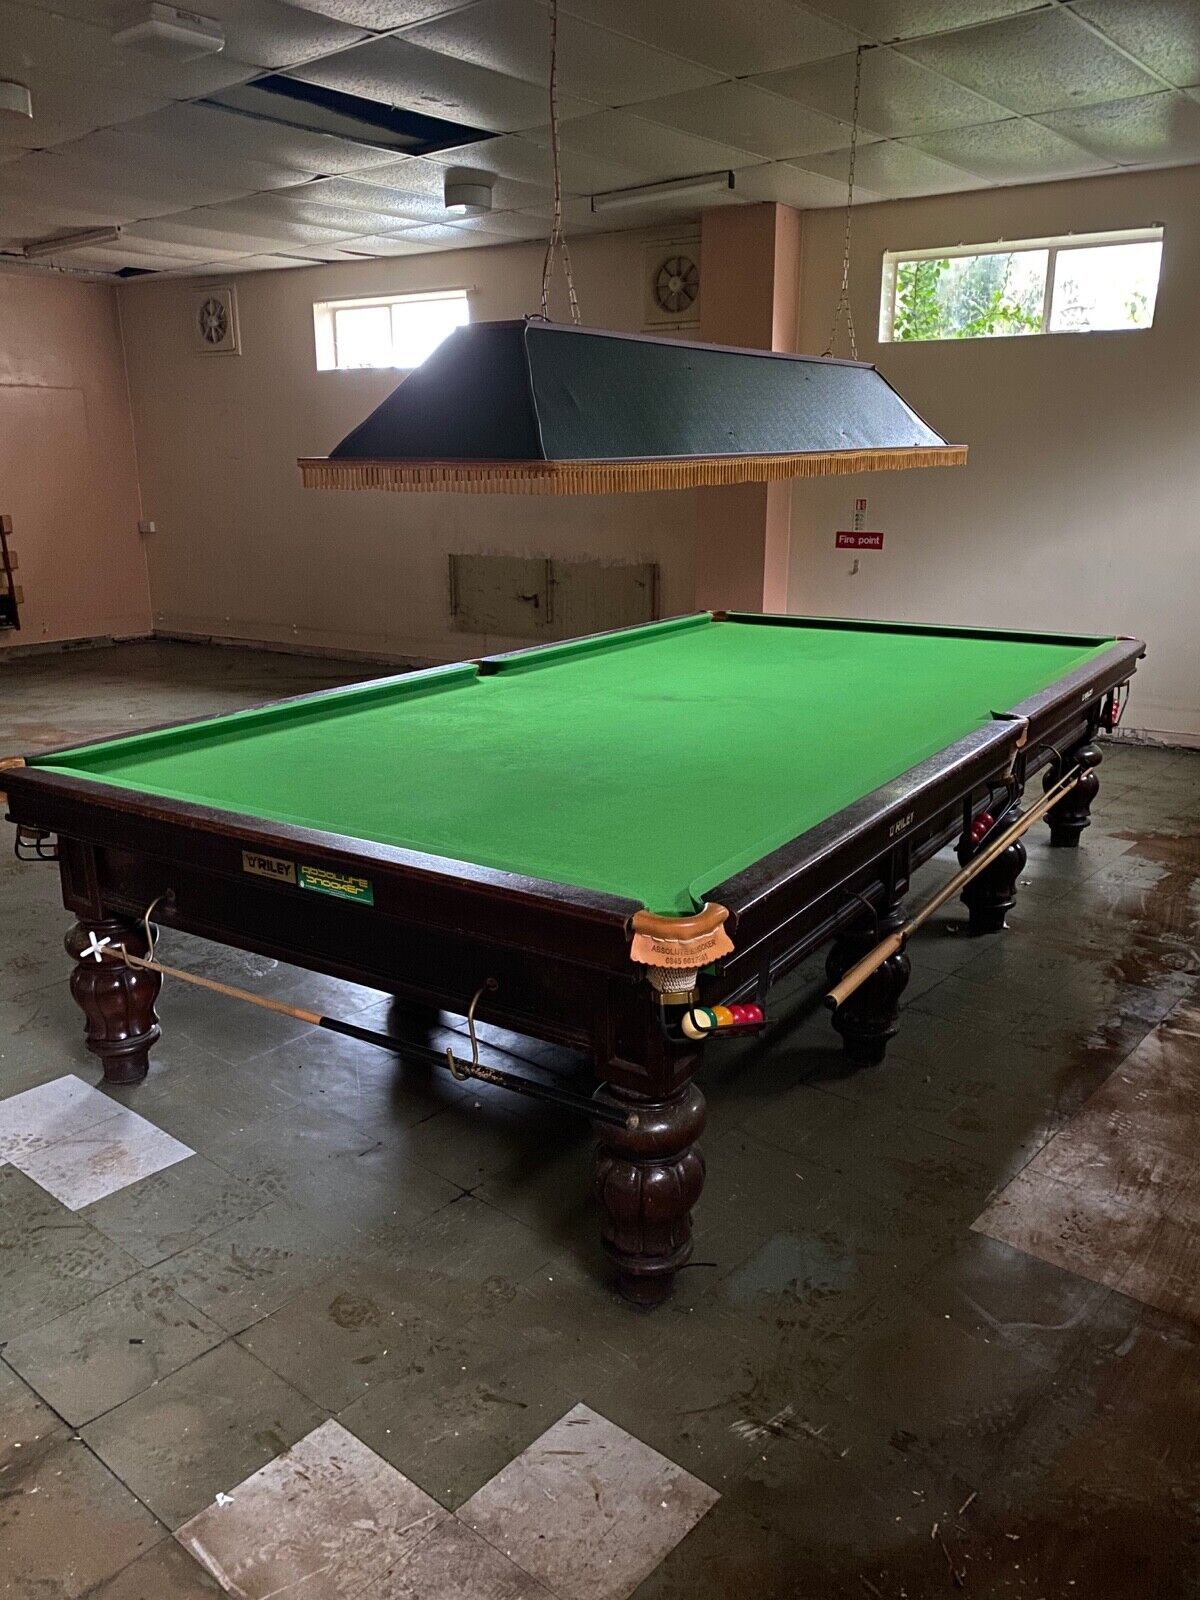 Riley full size snooker table.